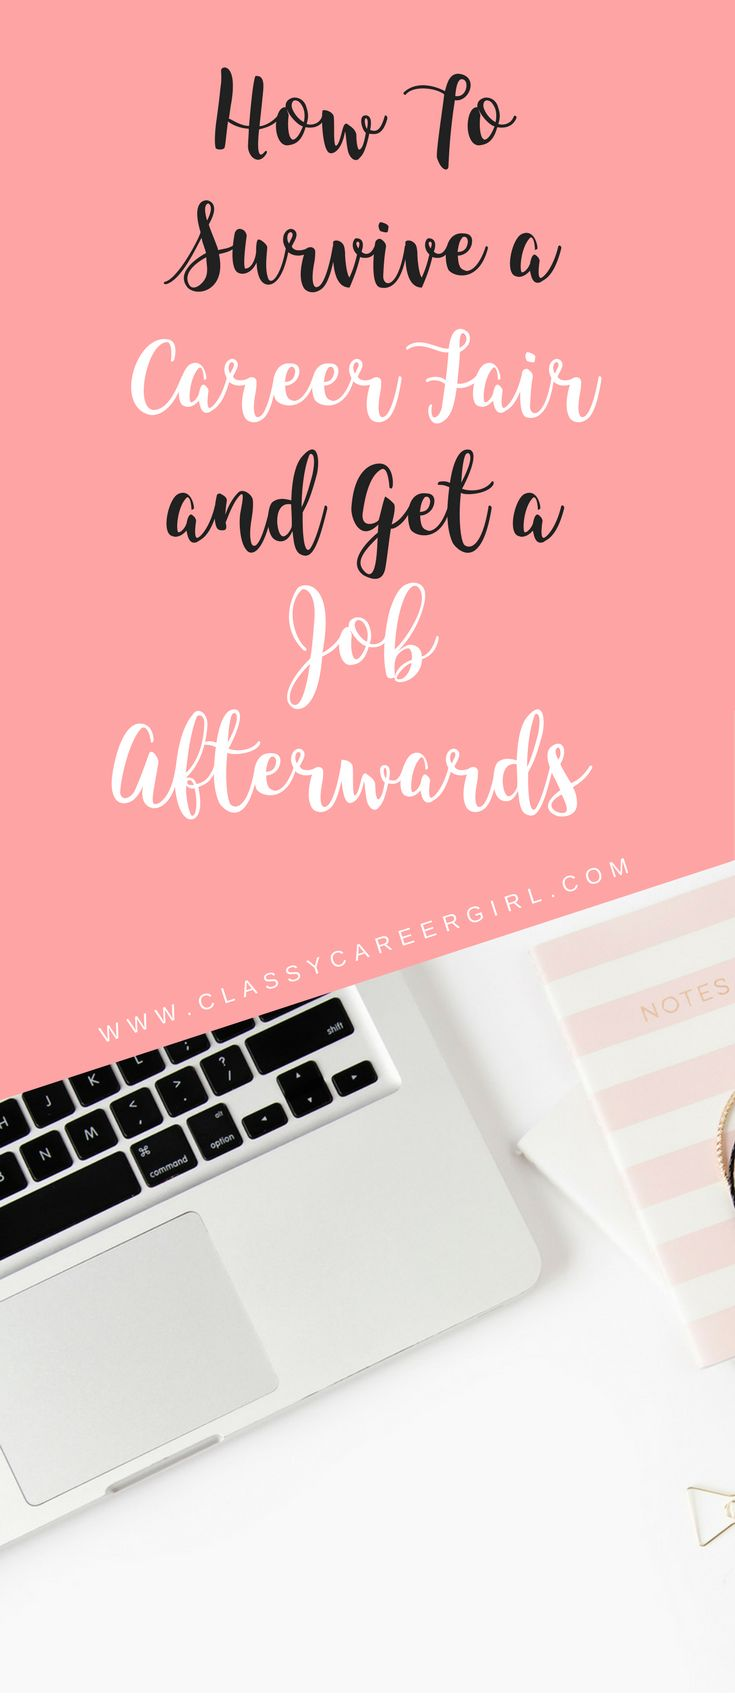 How To Survive a Career Fair and Get a Job Afterwards | Classy Career Girl